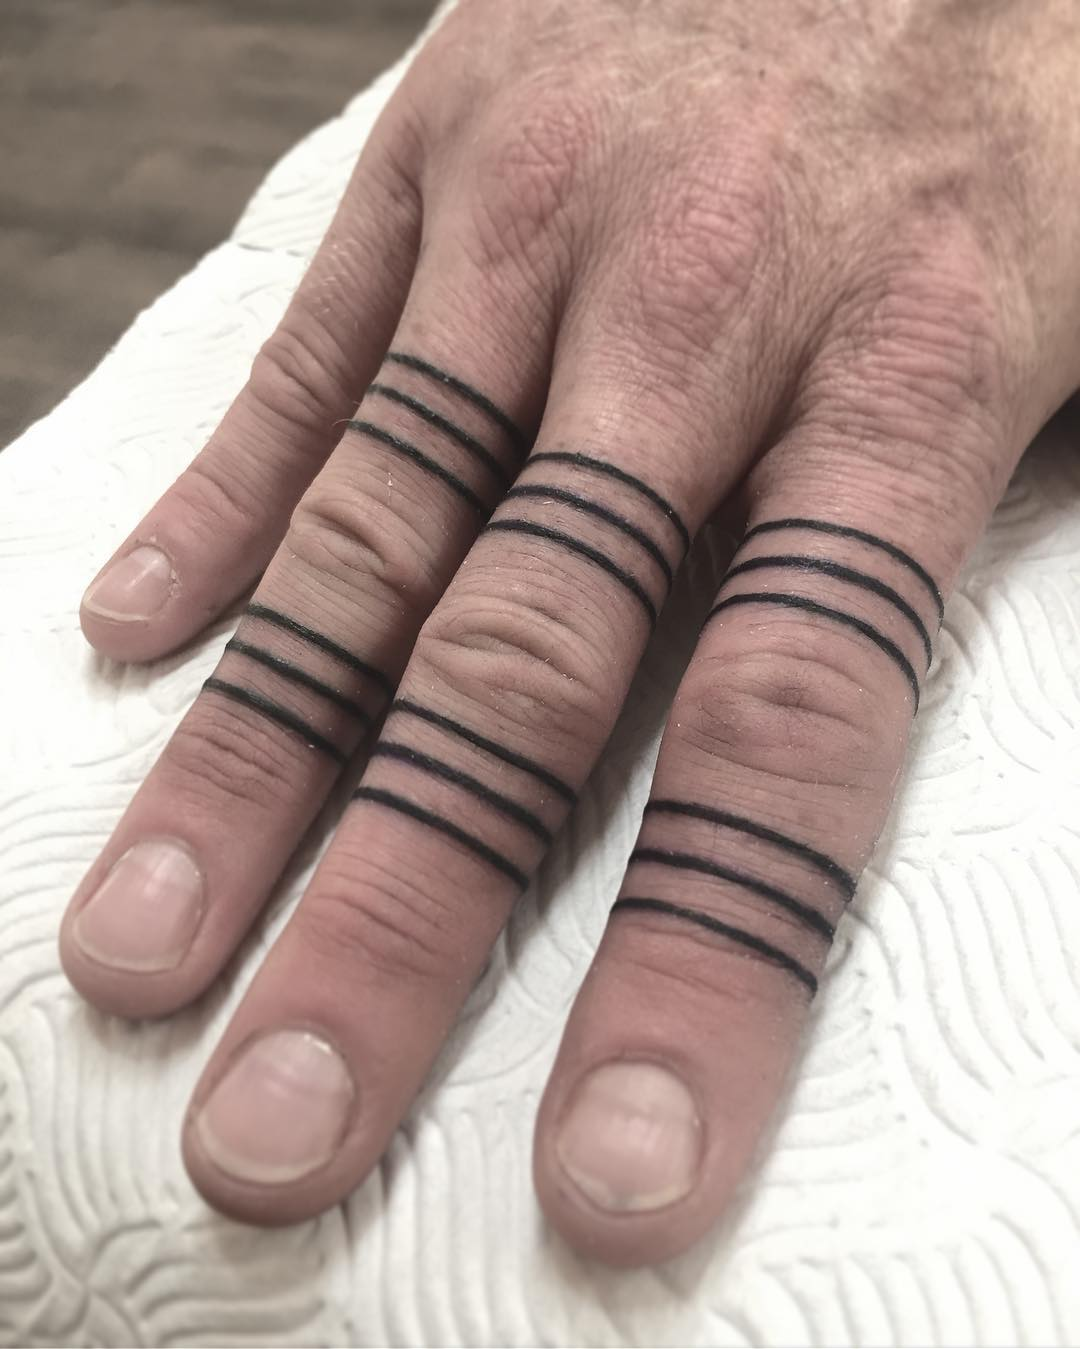 Finger bands by @pau1terry_